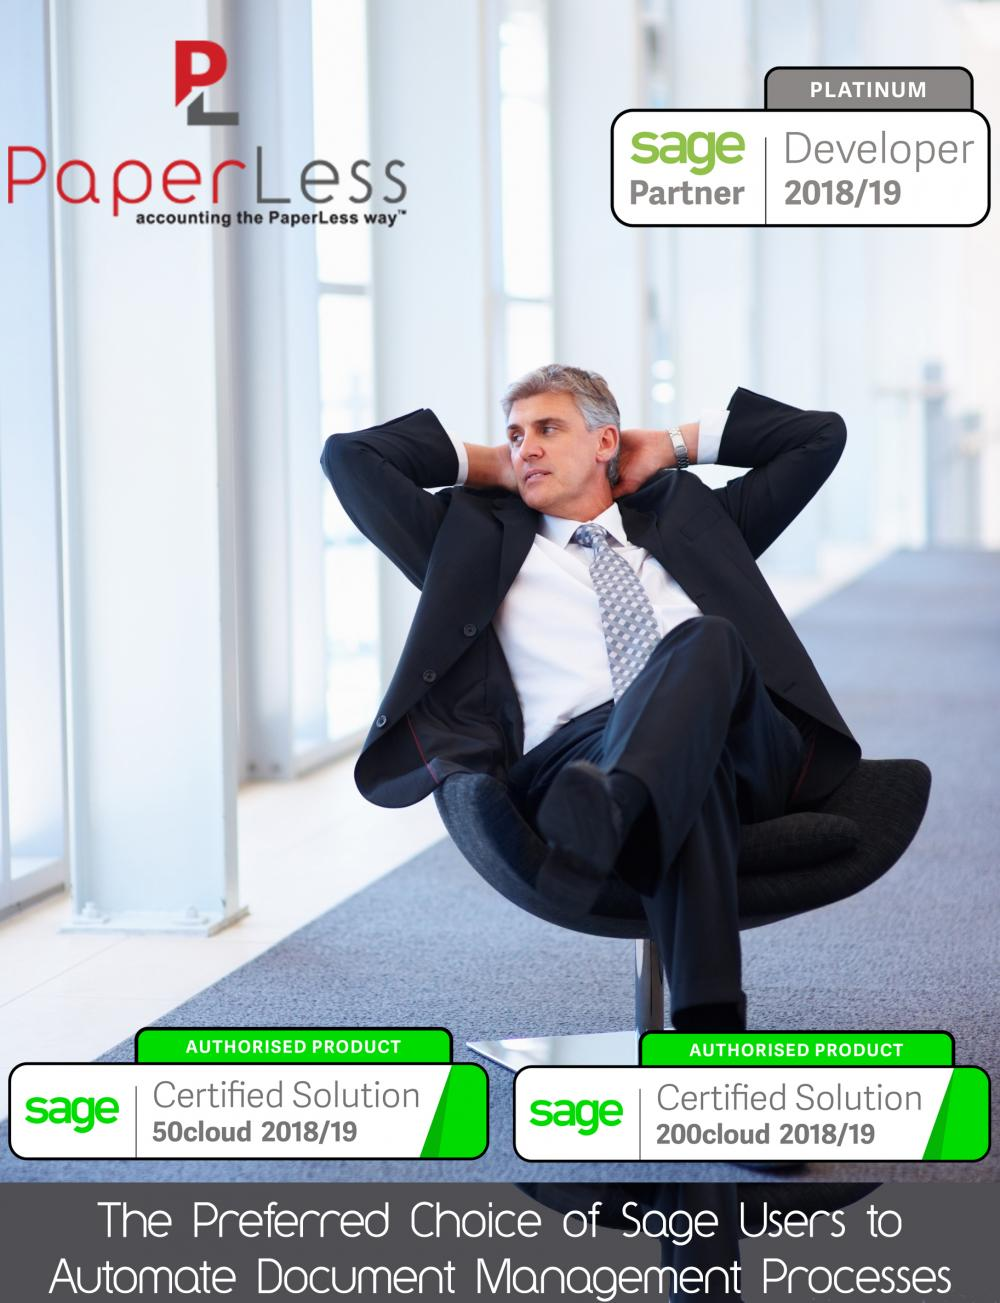 Sage automation software powered by PaperLess Document management for Sage. The best way to automate invoice scanning and invoice approval processes in Sage.